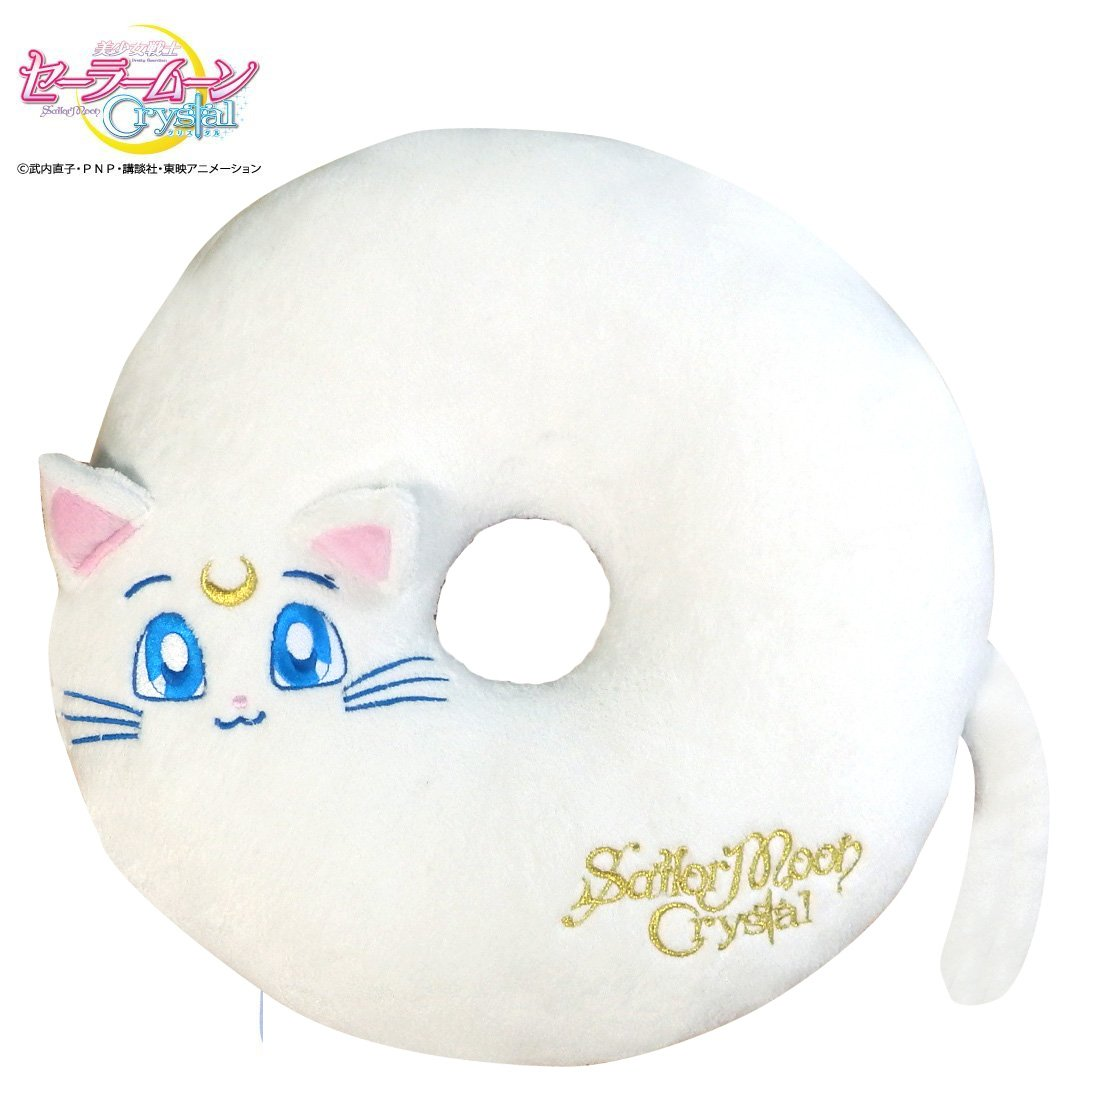 Sailor Moon Crystal fluffy Enza cushion Artemis BDSM116 by Small Planet